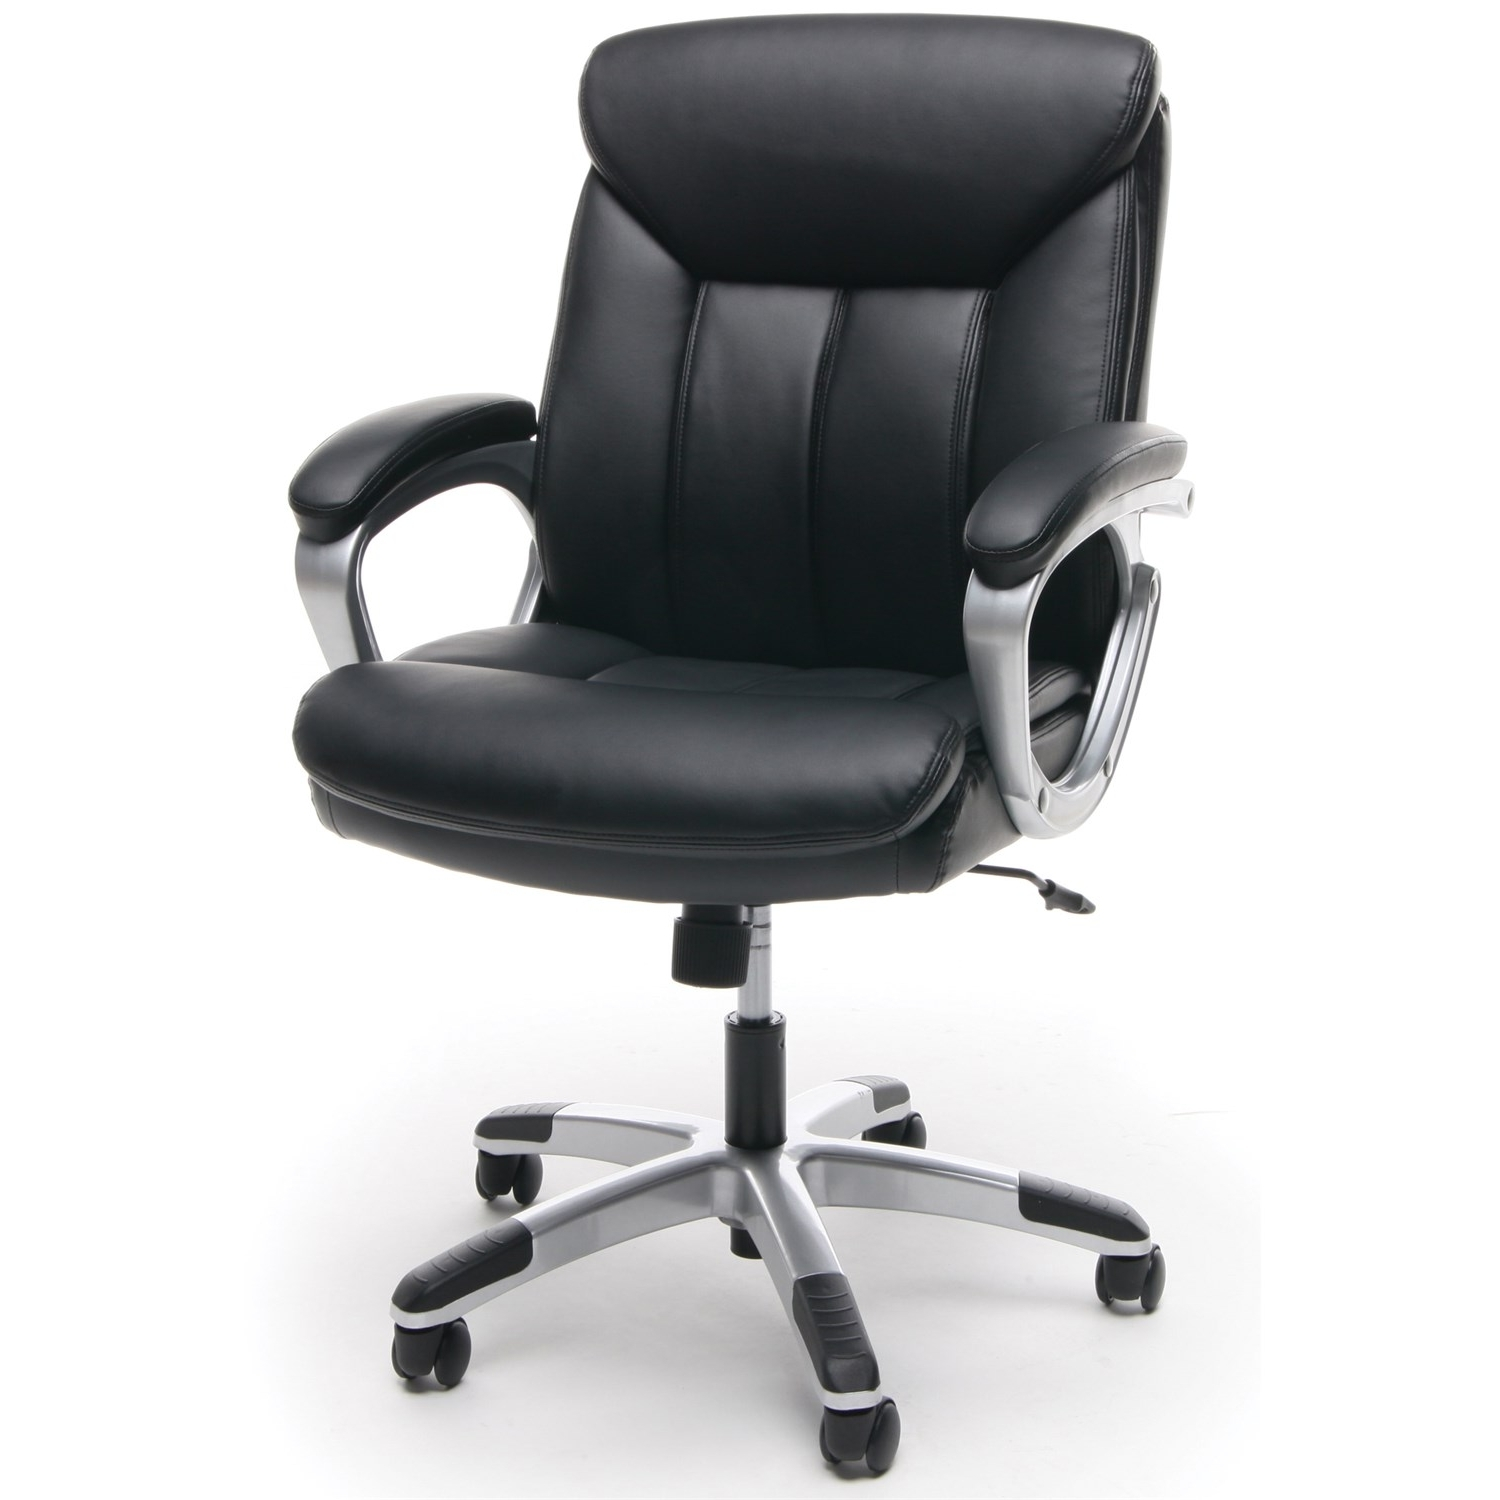 Ofm Ess 6020 Essentials Leather Executive Office Chair In Black Pertaining To Favorite Executive Office Chairs Without Arms (View 17 of 20)